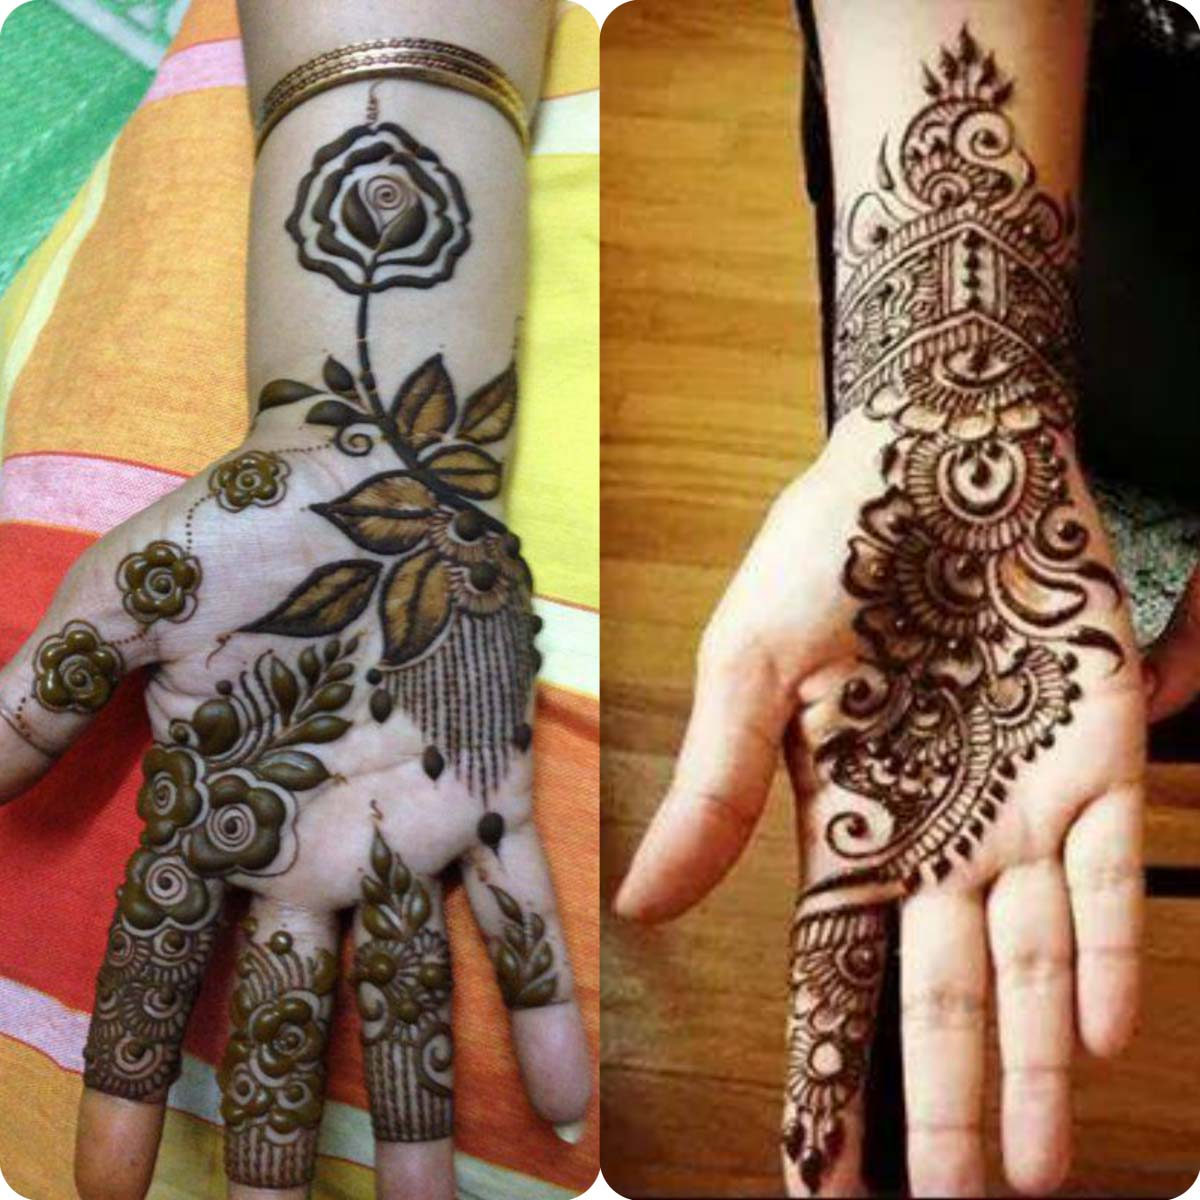 Mehndi design 2017 eid - New Simple And Easy Mehndi Designs 2016 2017 For Eid Al Azha 12